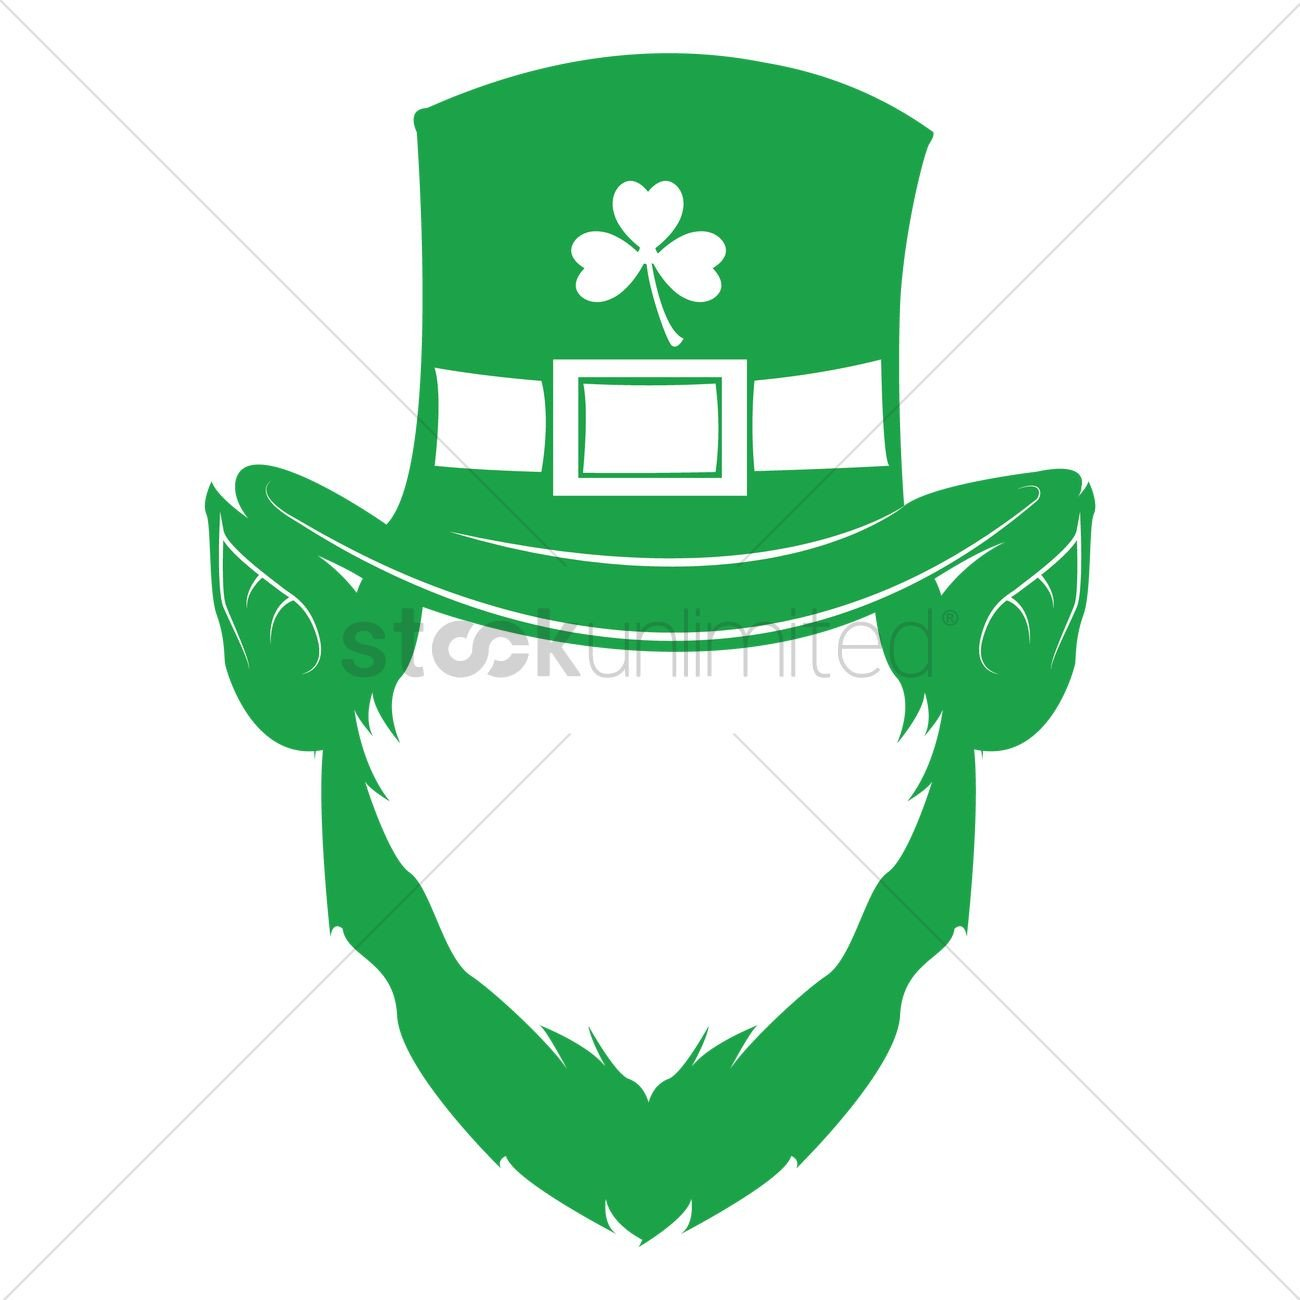 Leprechaun Hat and Beard Template Leprechaun Face with Hat and Beard Vector Image